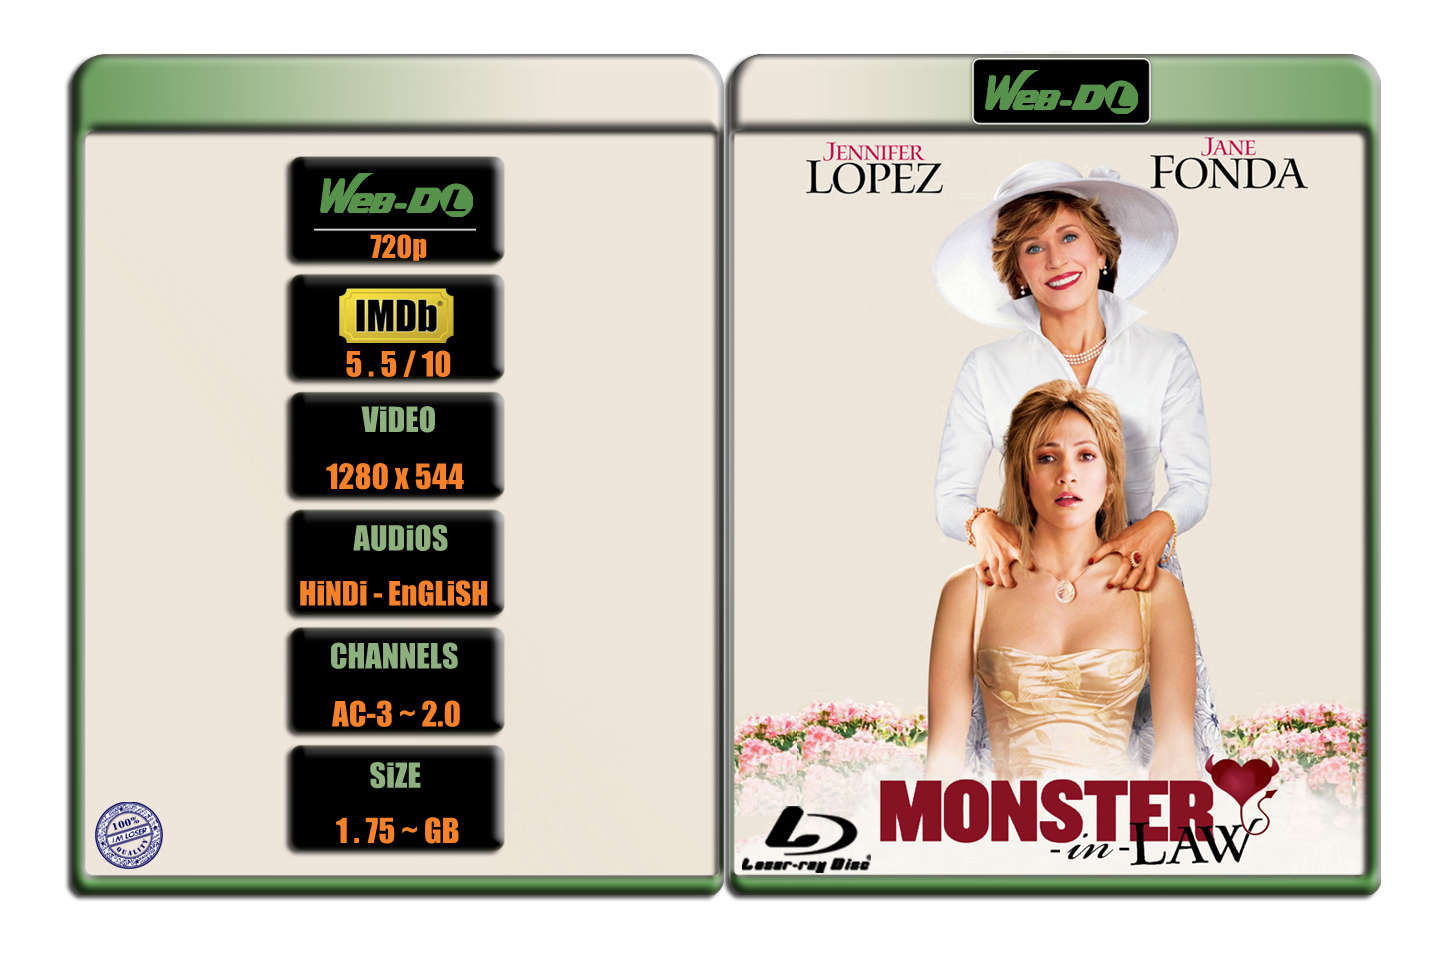 Monster In Law [2005] 720p WEB-DL x264 [AC-3 ~ 2.0] [HINDI - ENG] ® Im Loser ®